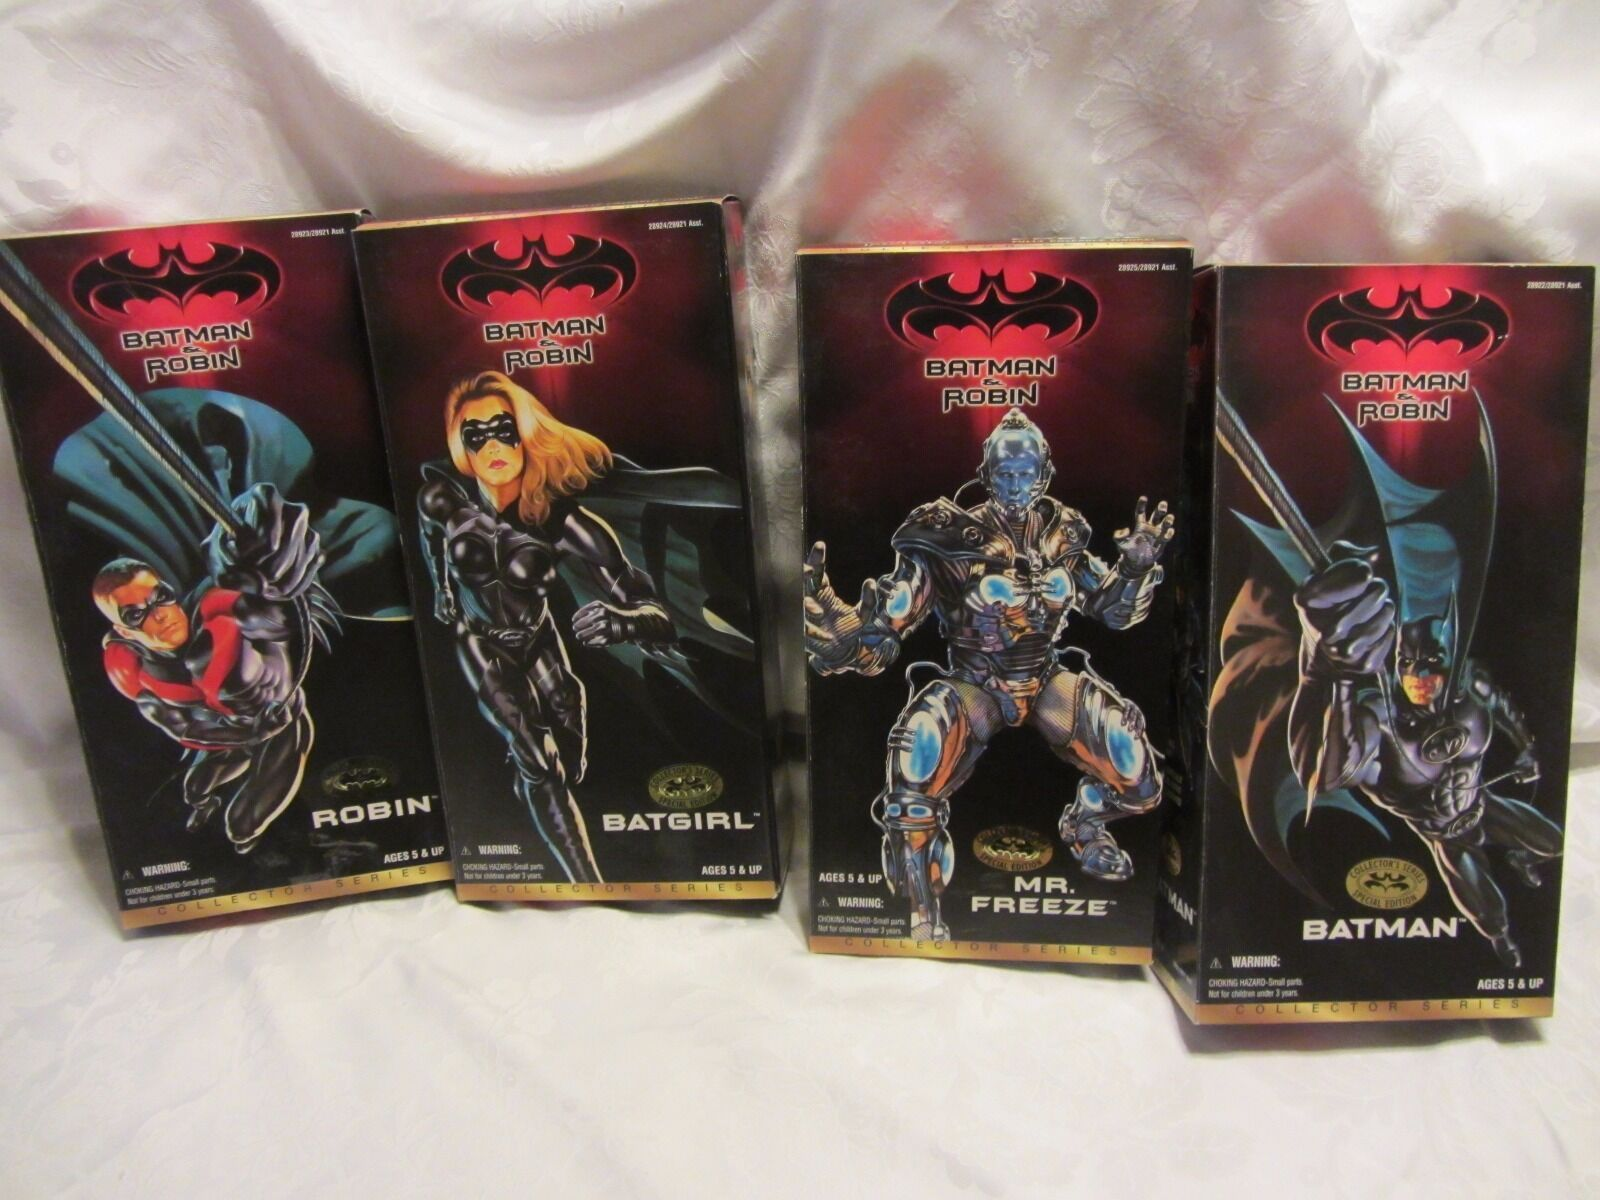 1997 BATMAN & ROBIN COLLECTOR SERIES SPECIAL EDITION  LOT OF 4 MINT CONDITION